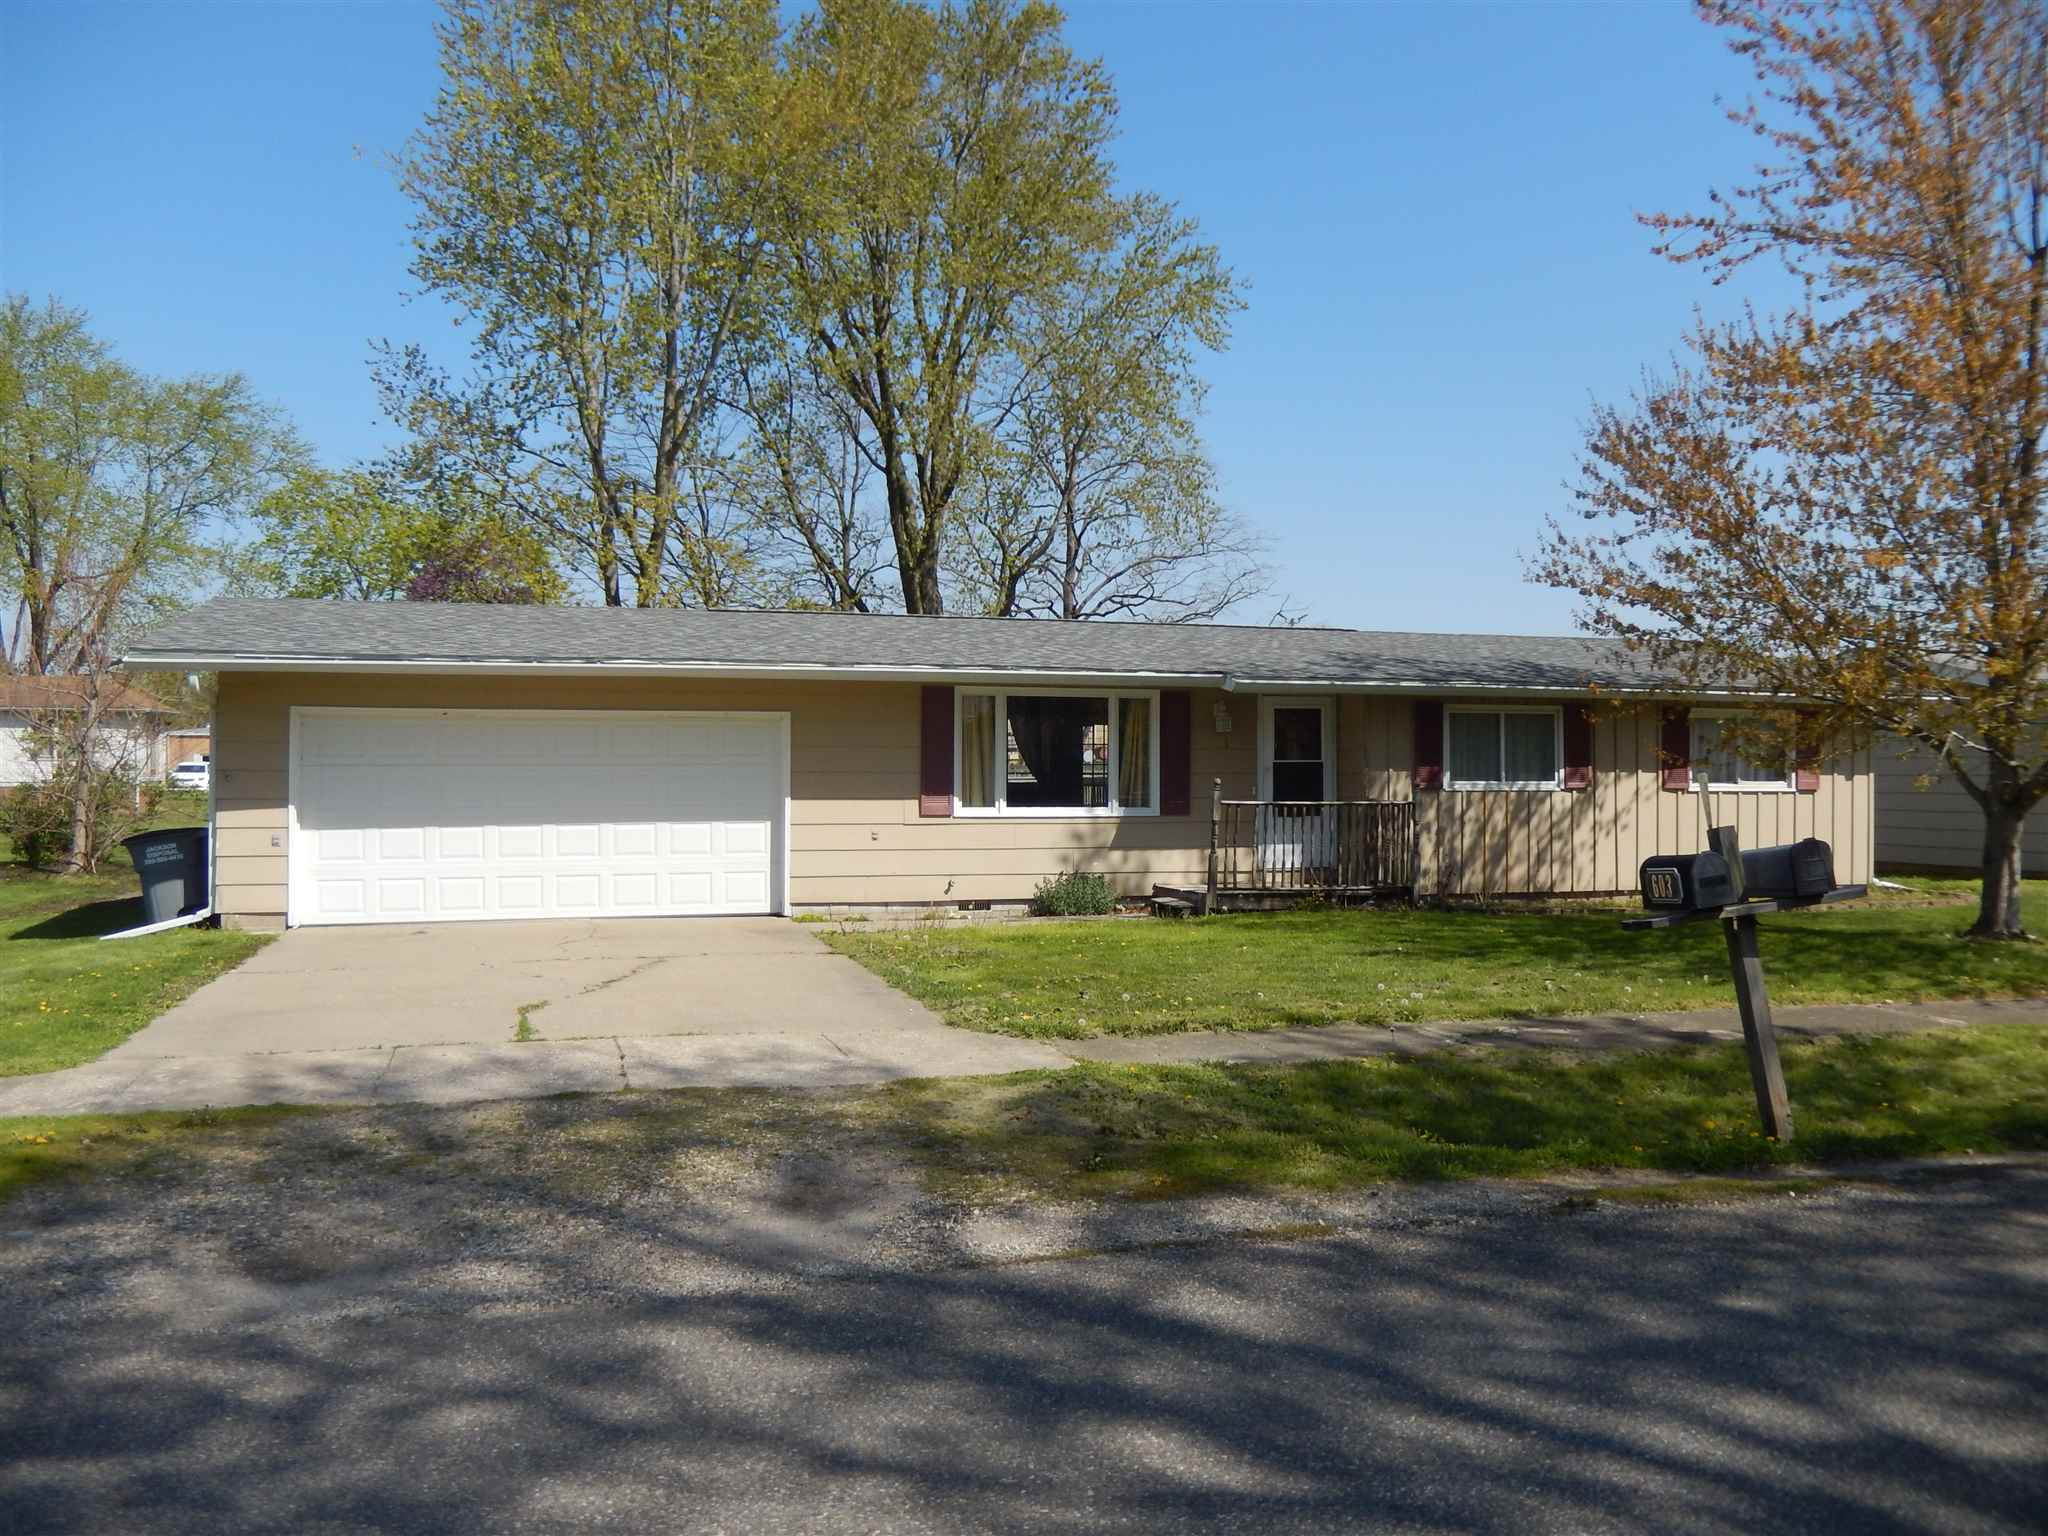 603 SHERRY Property Photo - Colchester, IL real estate listing